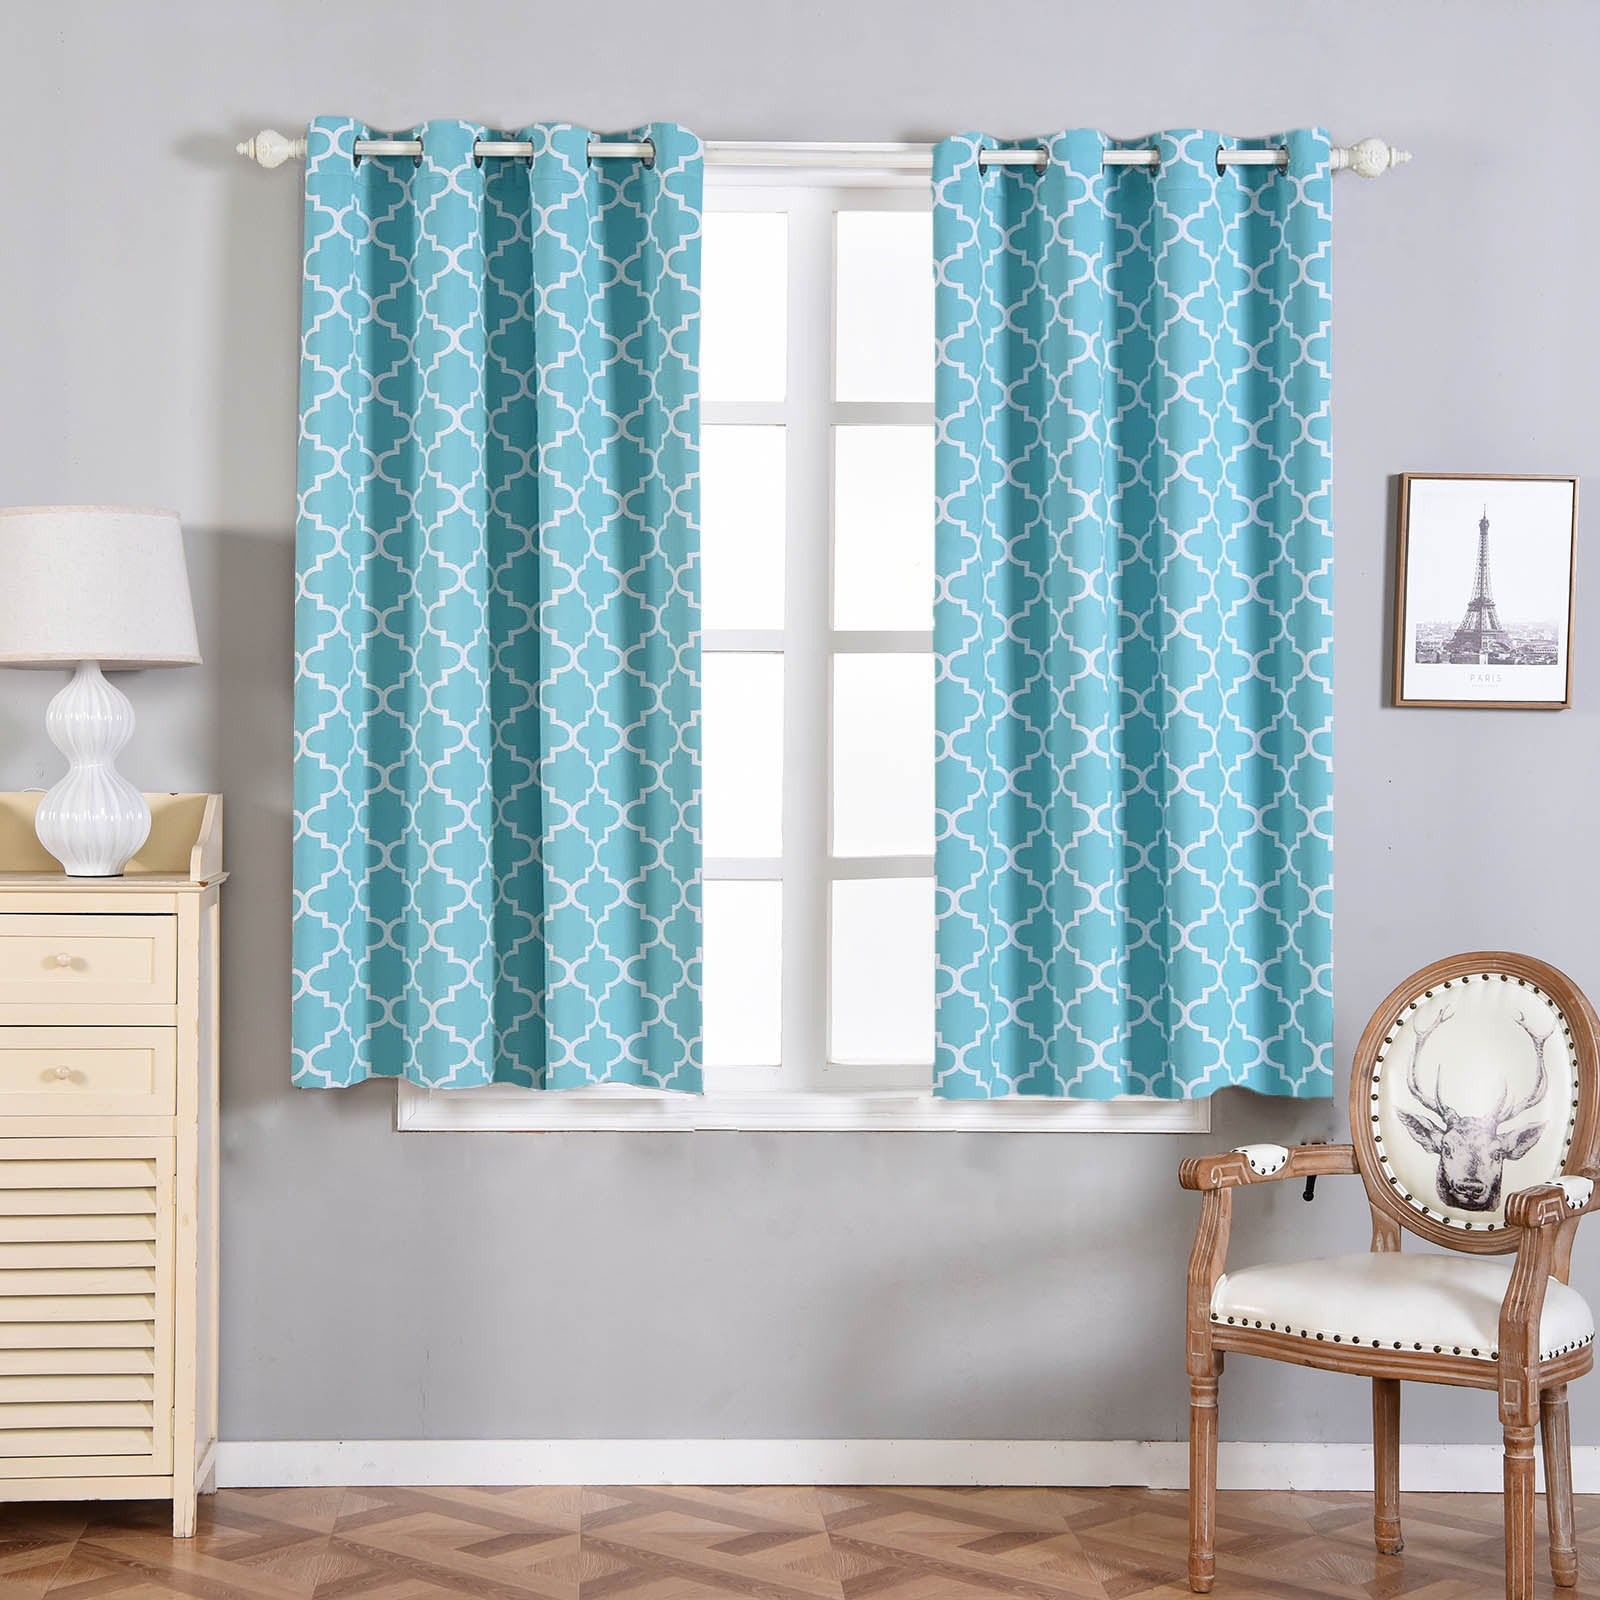 thermal room treatments insulated darkening curtain zero curtains cooper textured single sun pdx panel wayfair reviews window solid grommet